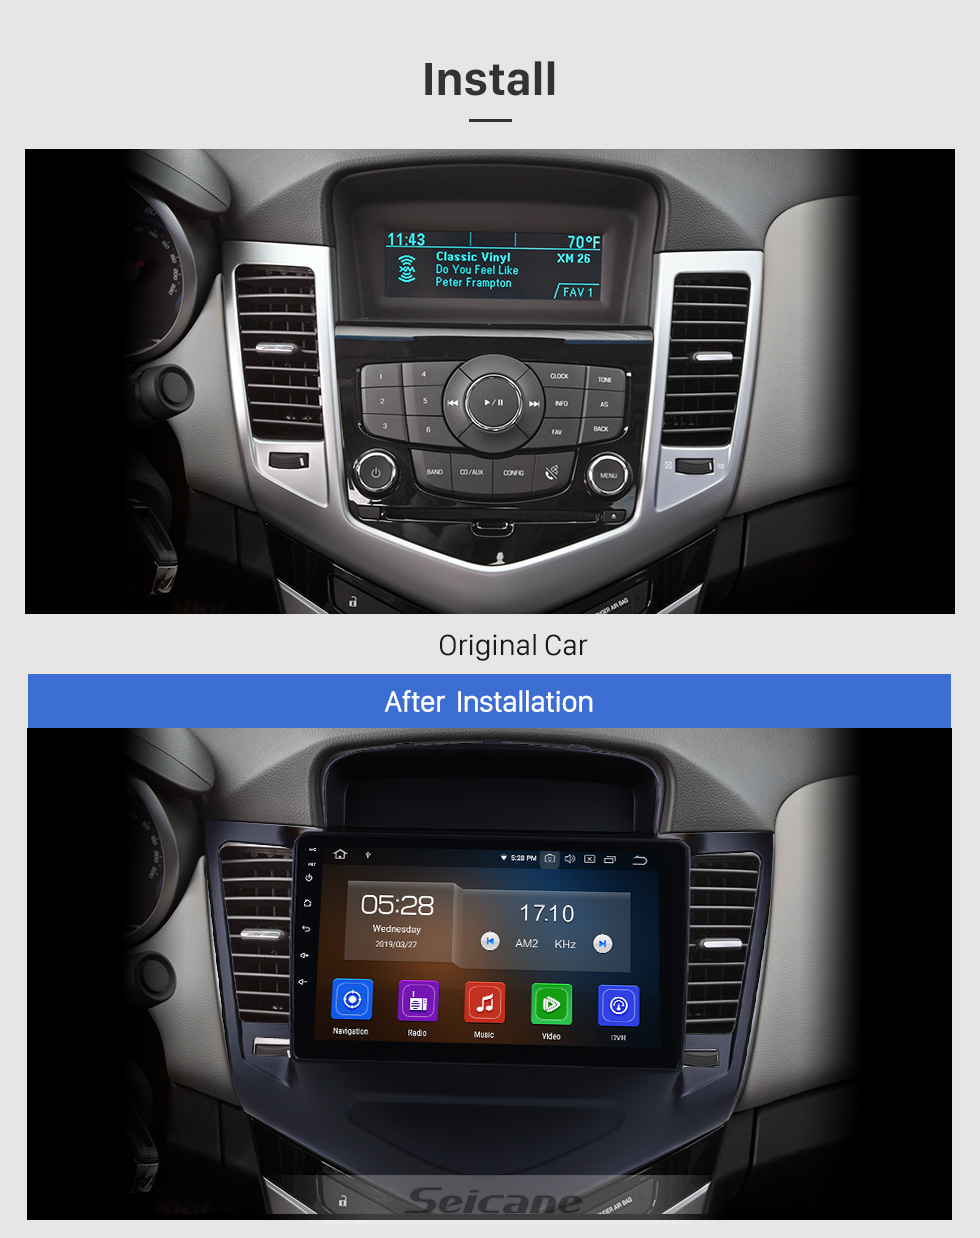 Seicane 2013-2015 chevy Chevrolet CRUZE Android 9.0 9 inch GPS Navigation Bluetooth Radio with USB FM Music Carplay support Steering Wheel Control 4G Backup camera